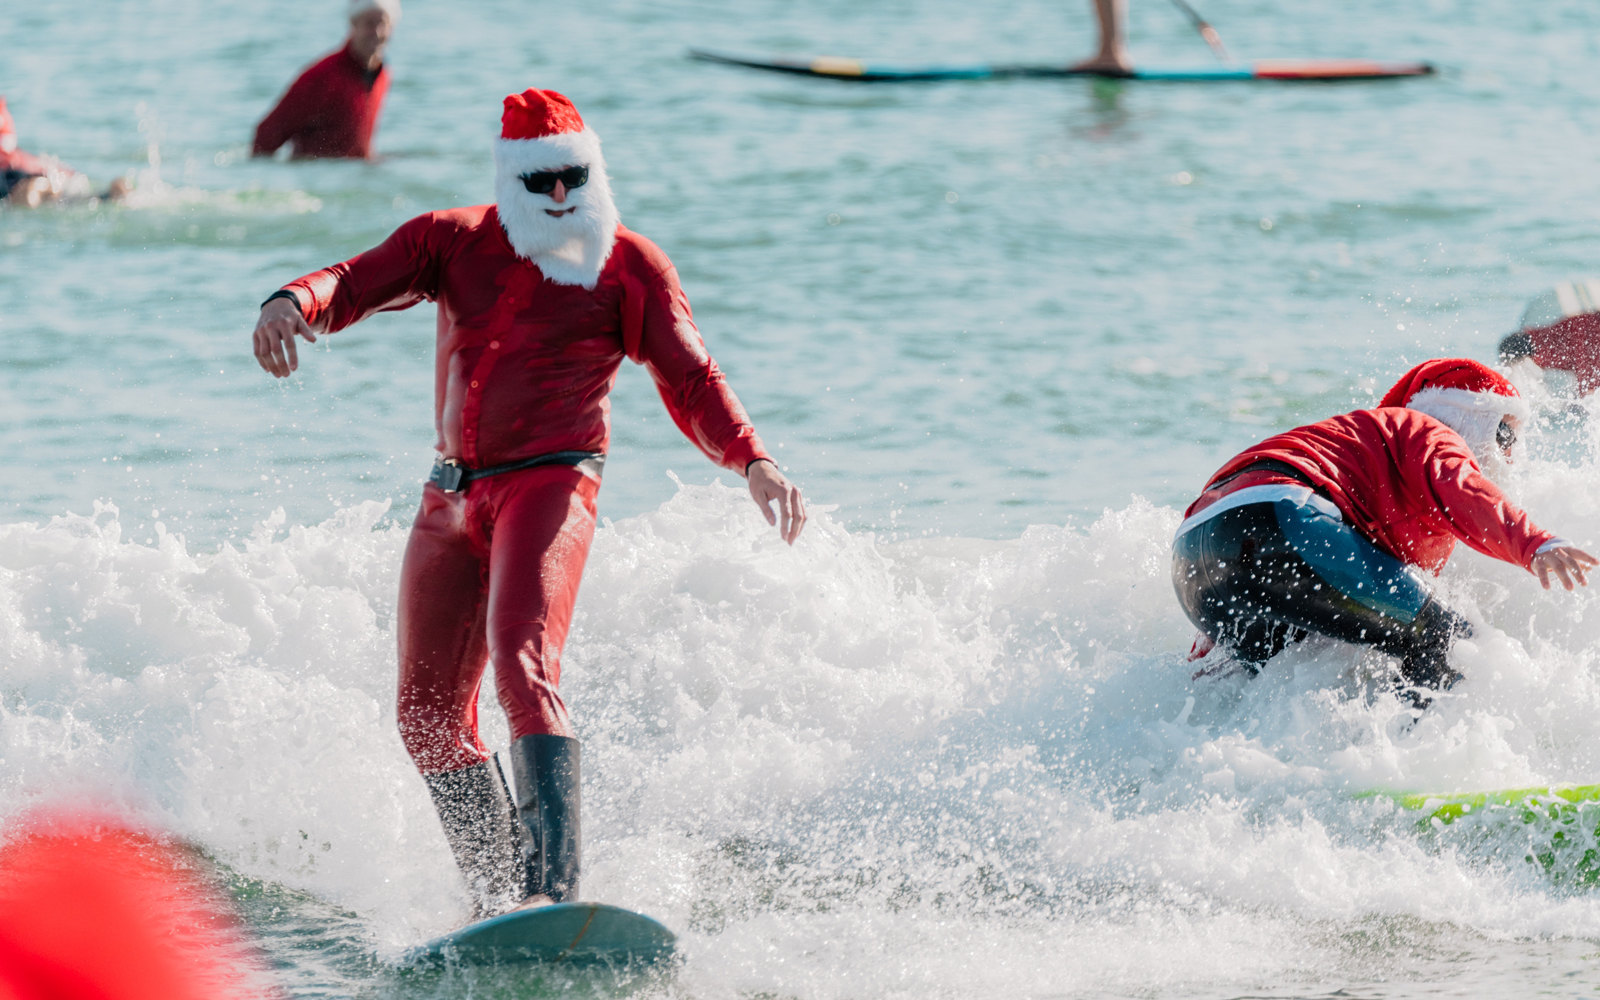 Santa Claus surfing at annual Surfing Santas event